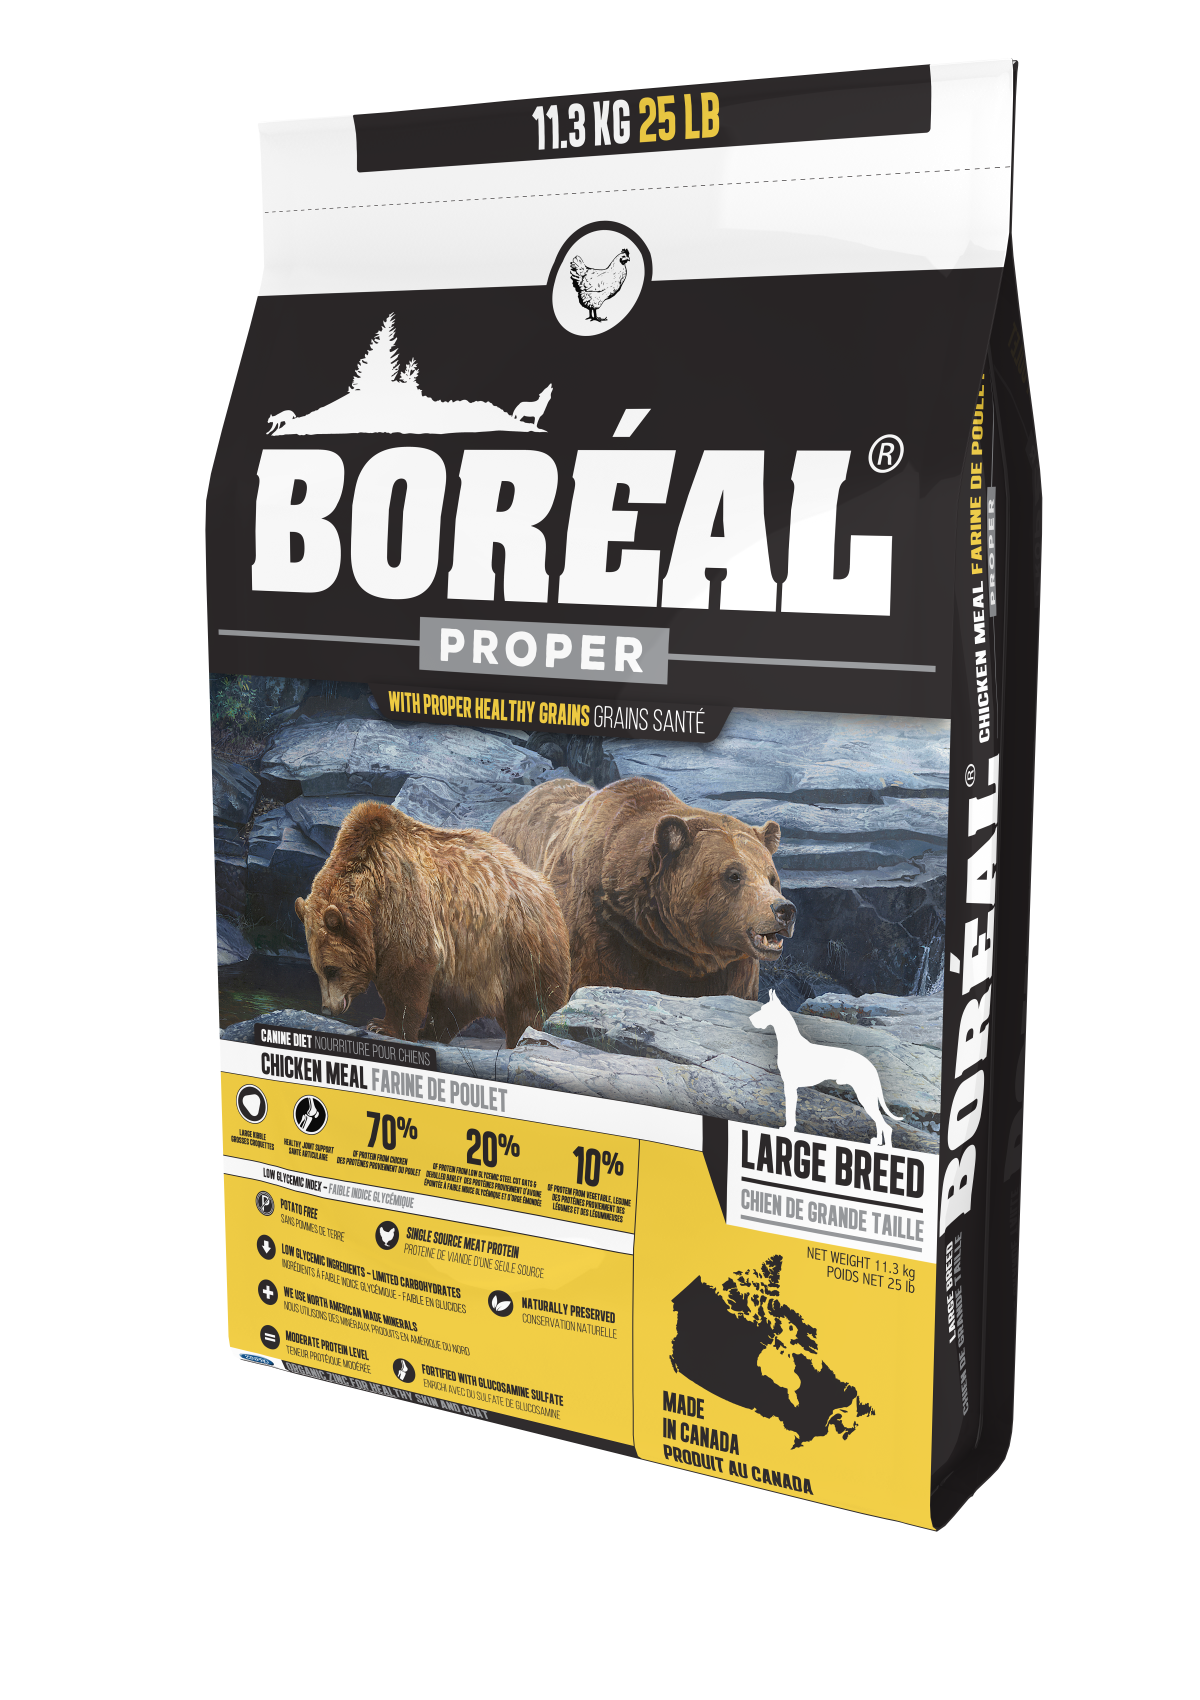 Proper Large Breed Chicken Meal - Low Carb Grains